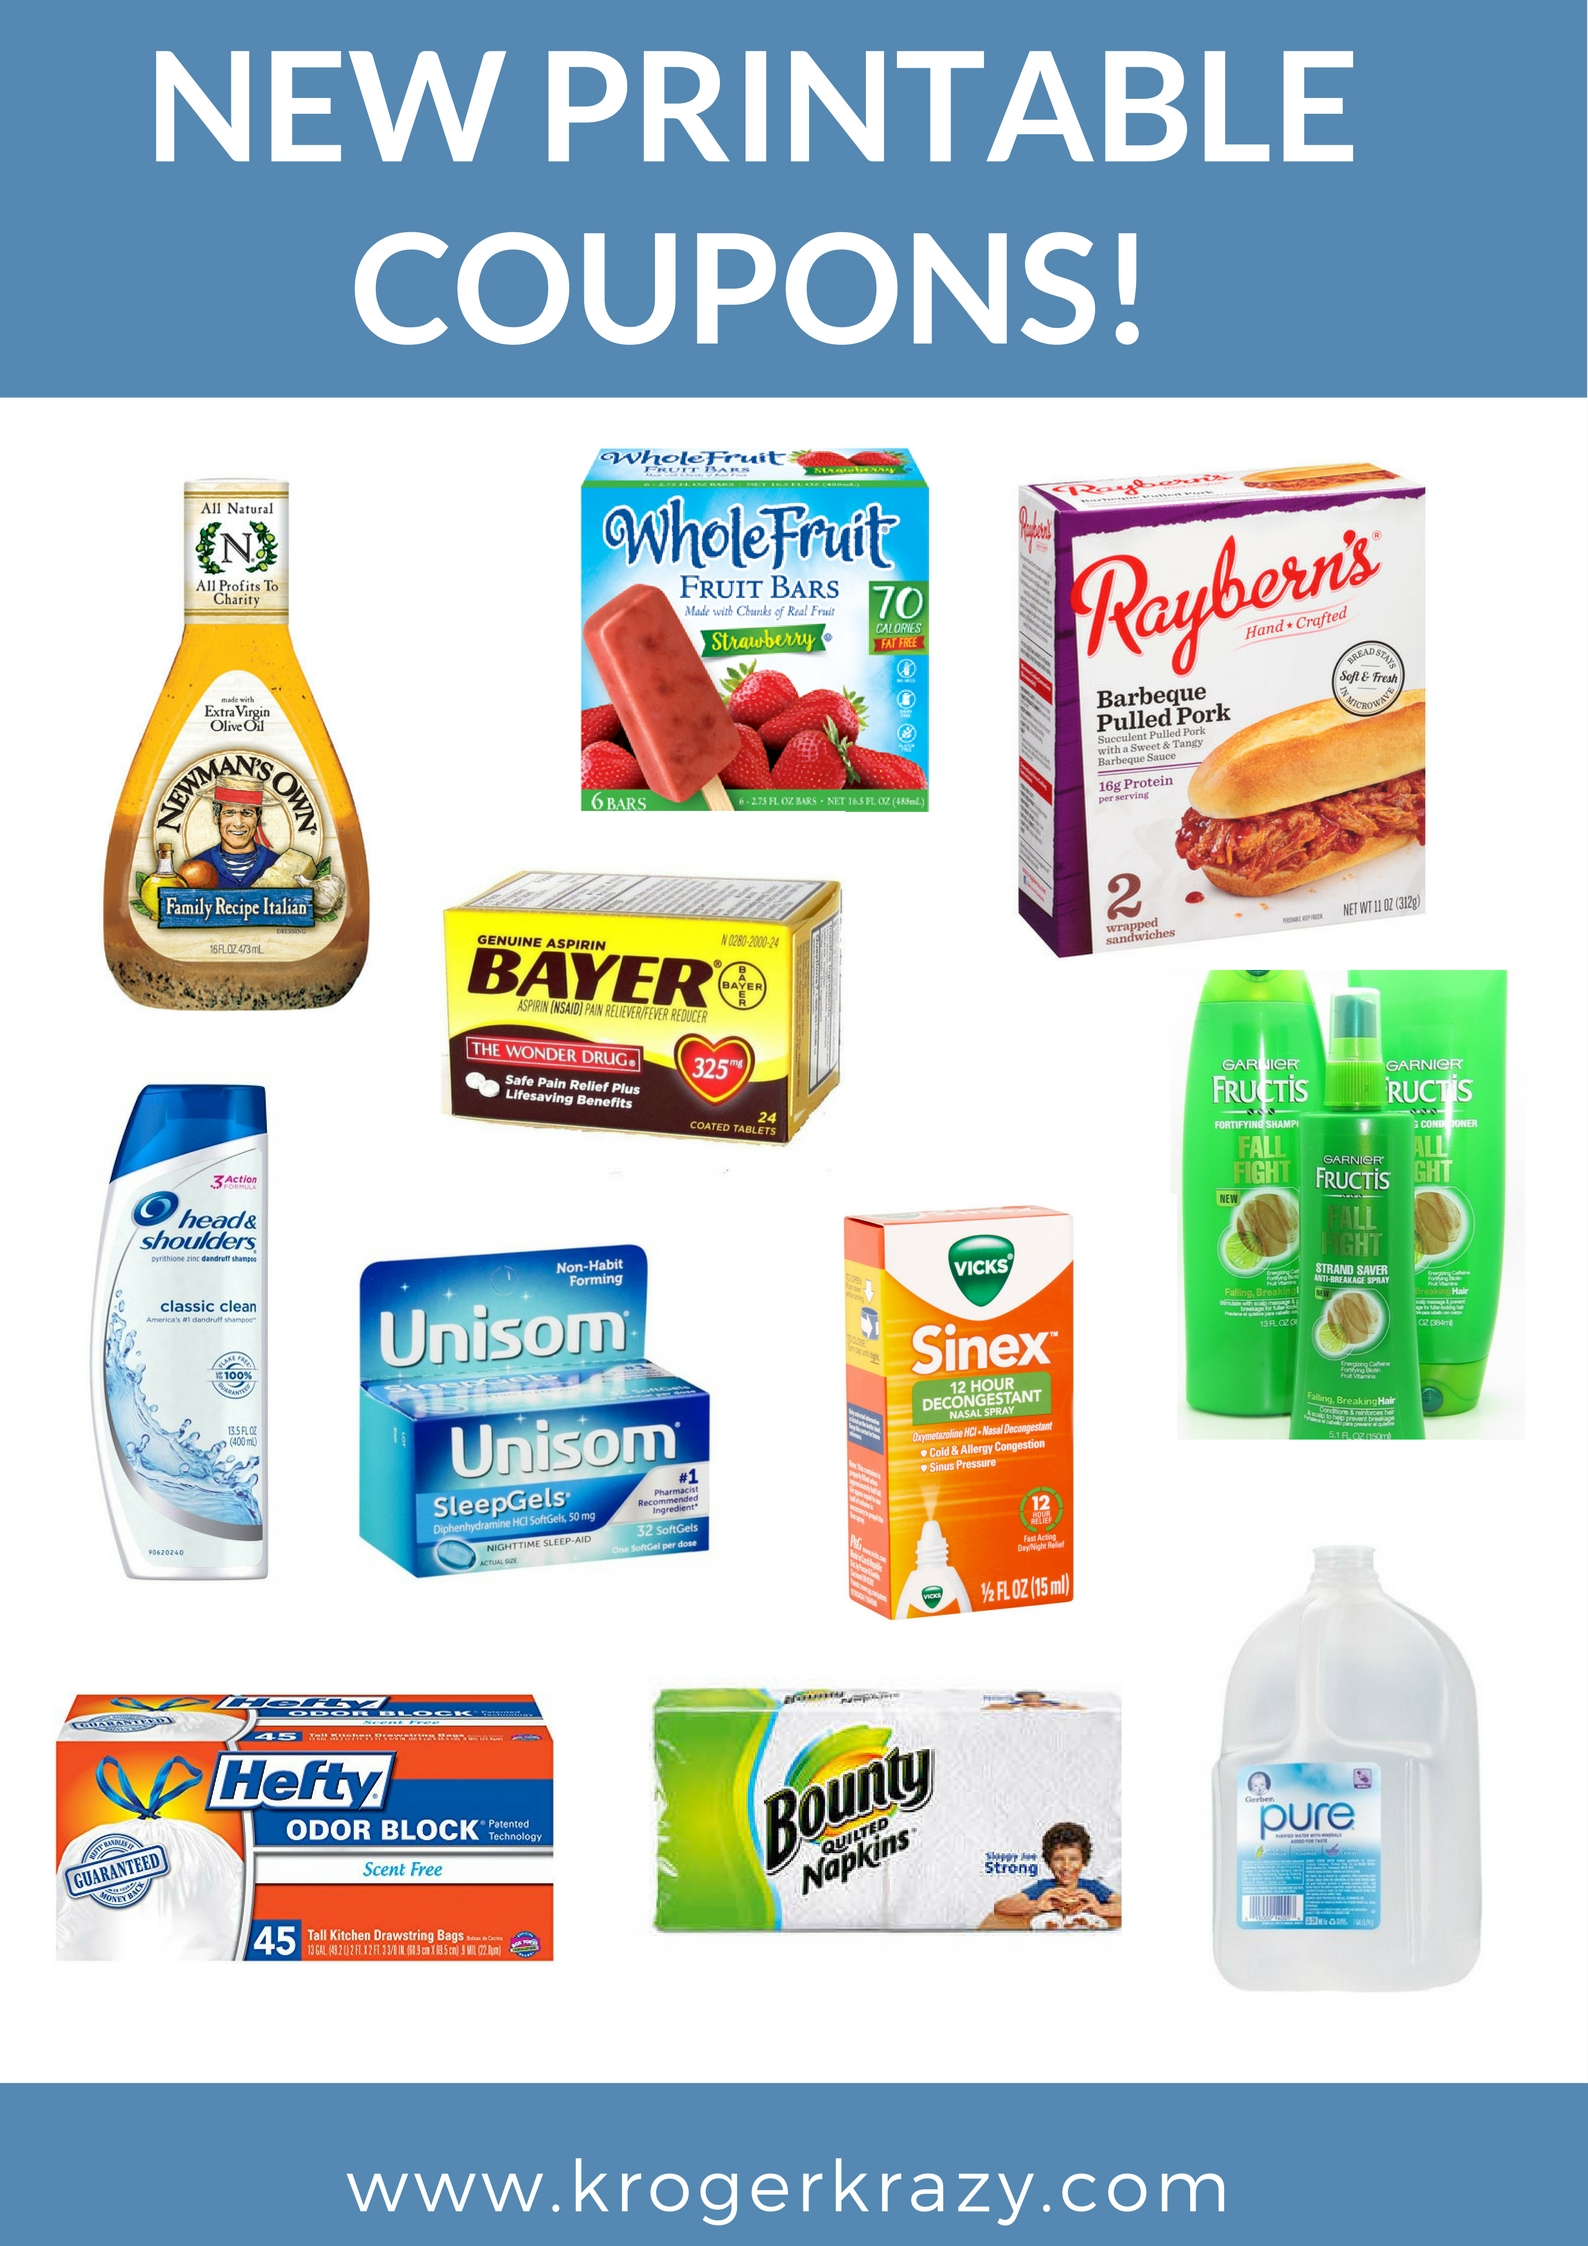 image about Viva Printable Coupons titled Fresh Printable Coupon codes! Gerber, Garnier, Clairol, Viva